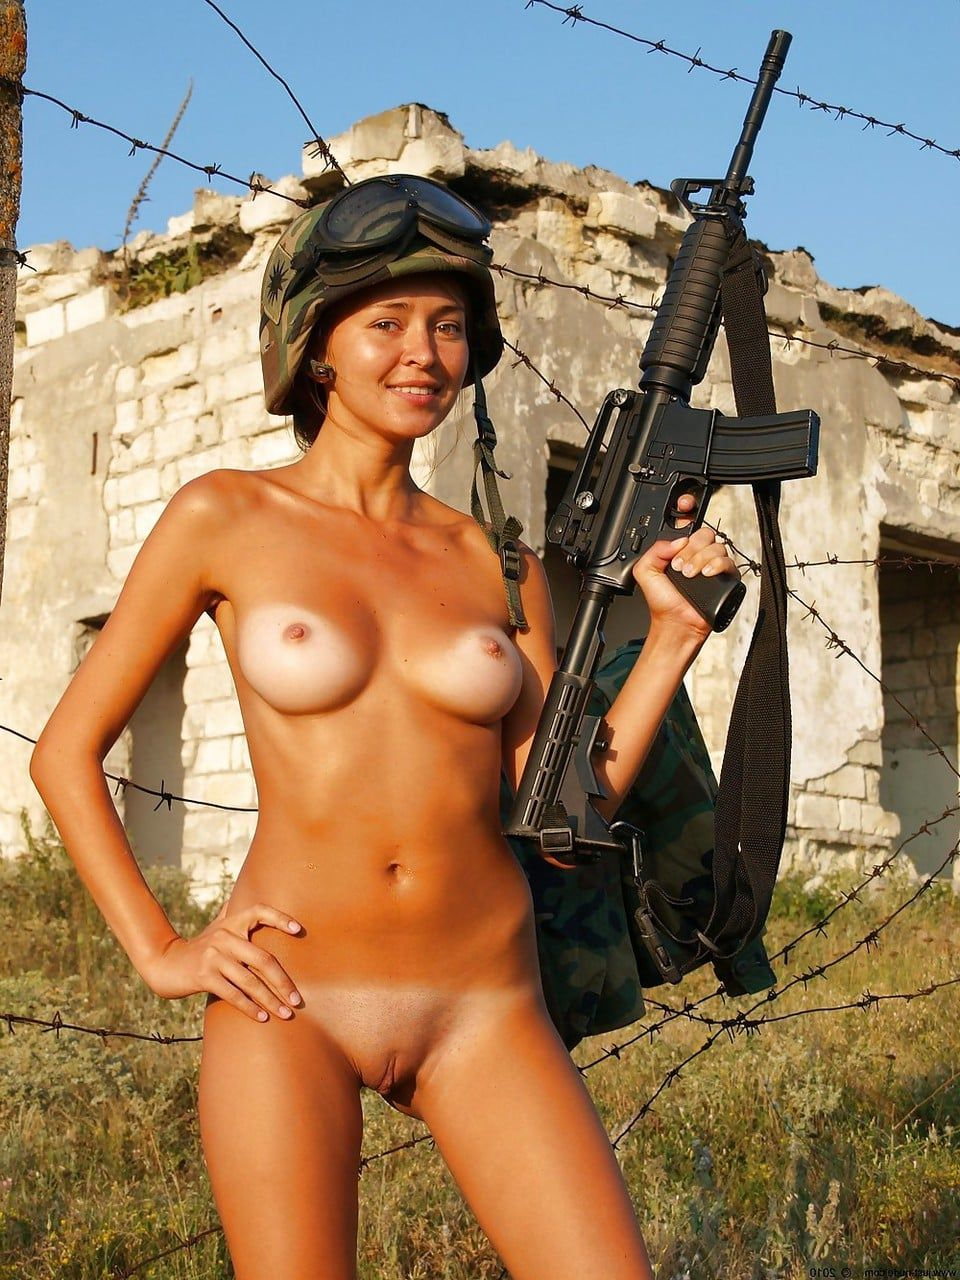 Consider, Sons of guns girl nude